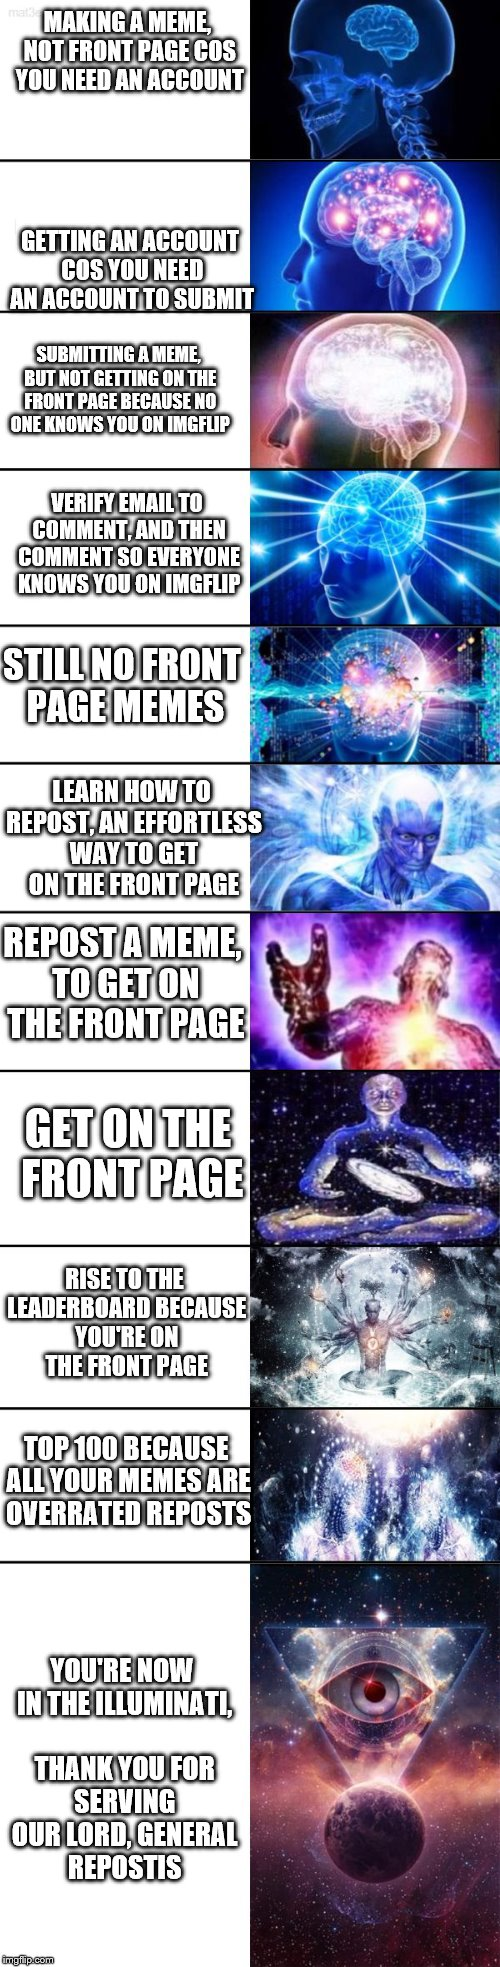 The how to join the Illuminati in 5 easy steps | MAKING A MEME, NOT FRONT PAGE COS YOU NEED AN ACCOUNT GETTING AN ACCOUNT COS YOU NEED AN ACCOUNT TO SUBMIT SUBMITTING A MEME, BUT NOT GETTIN | image tagged in extended expanding brain,memes,expanding brain,illuminati | made w/ Imgflip meme maker